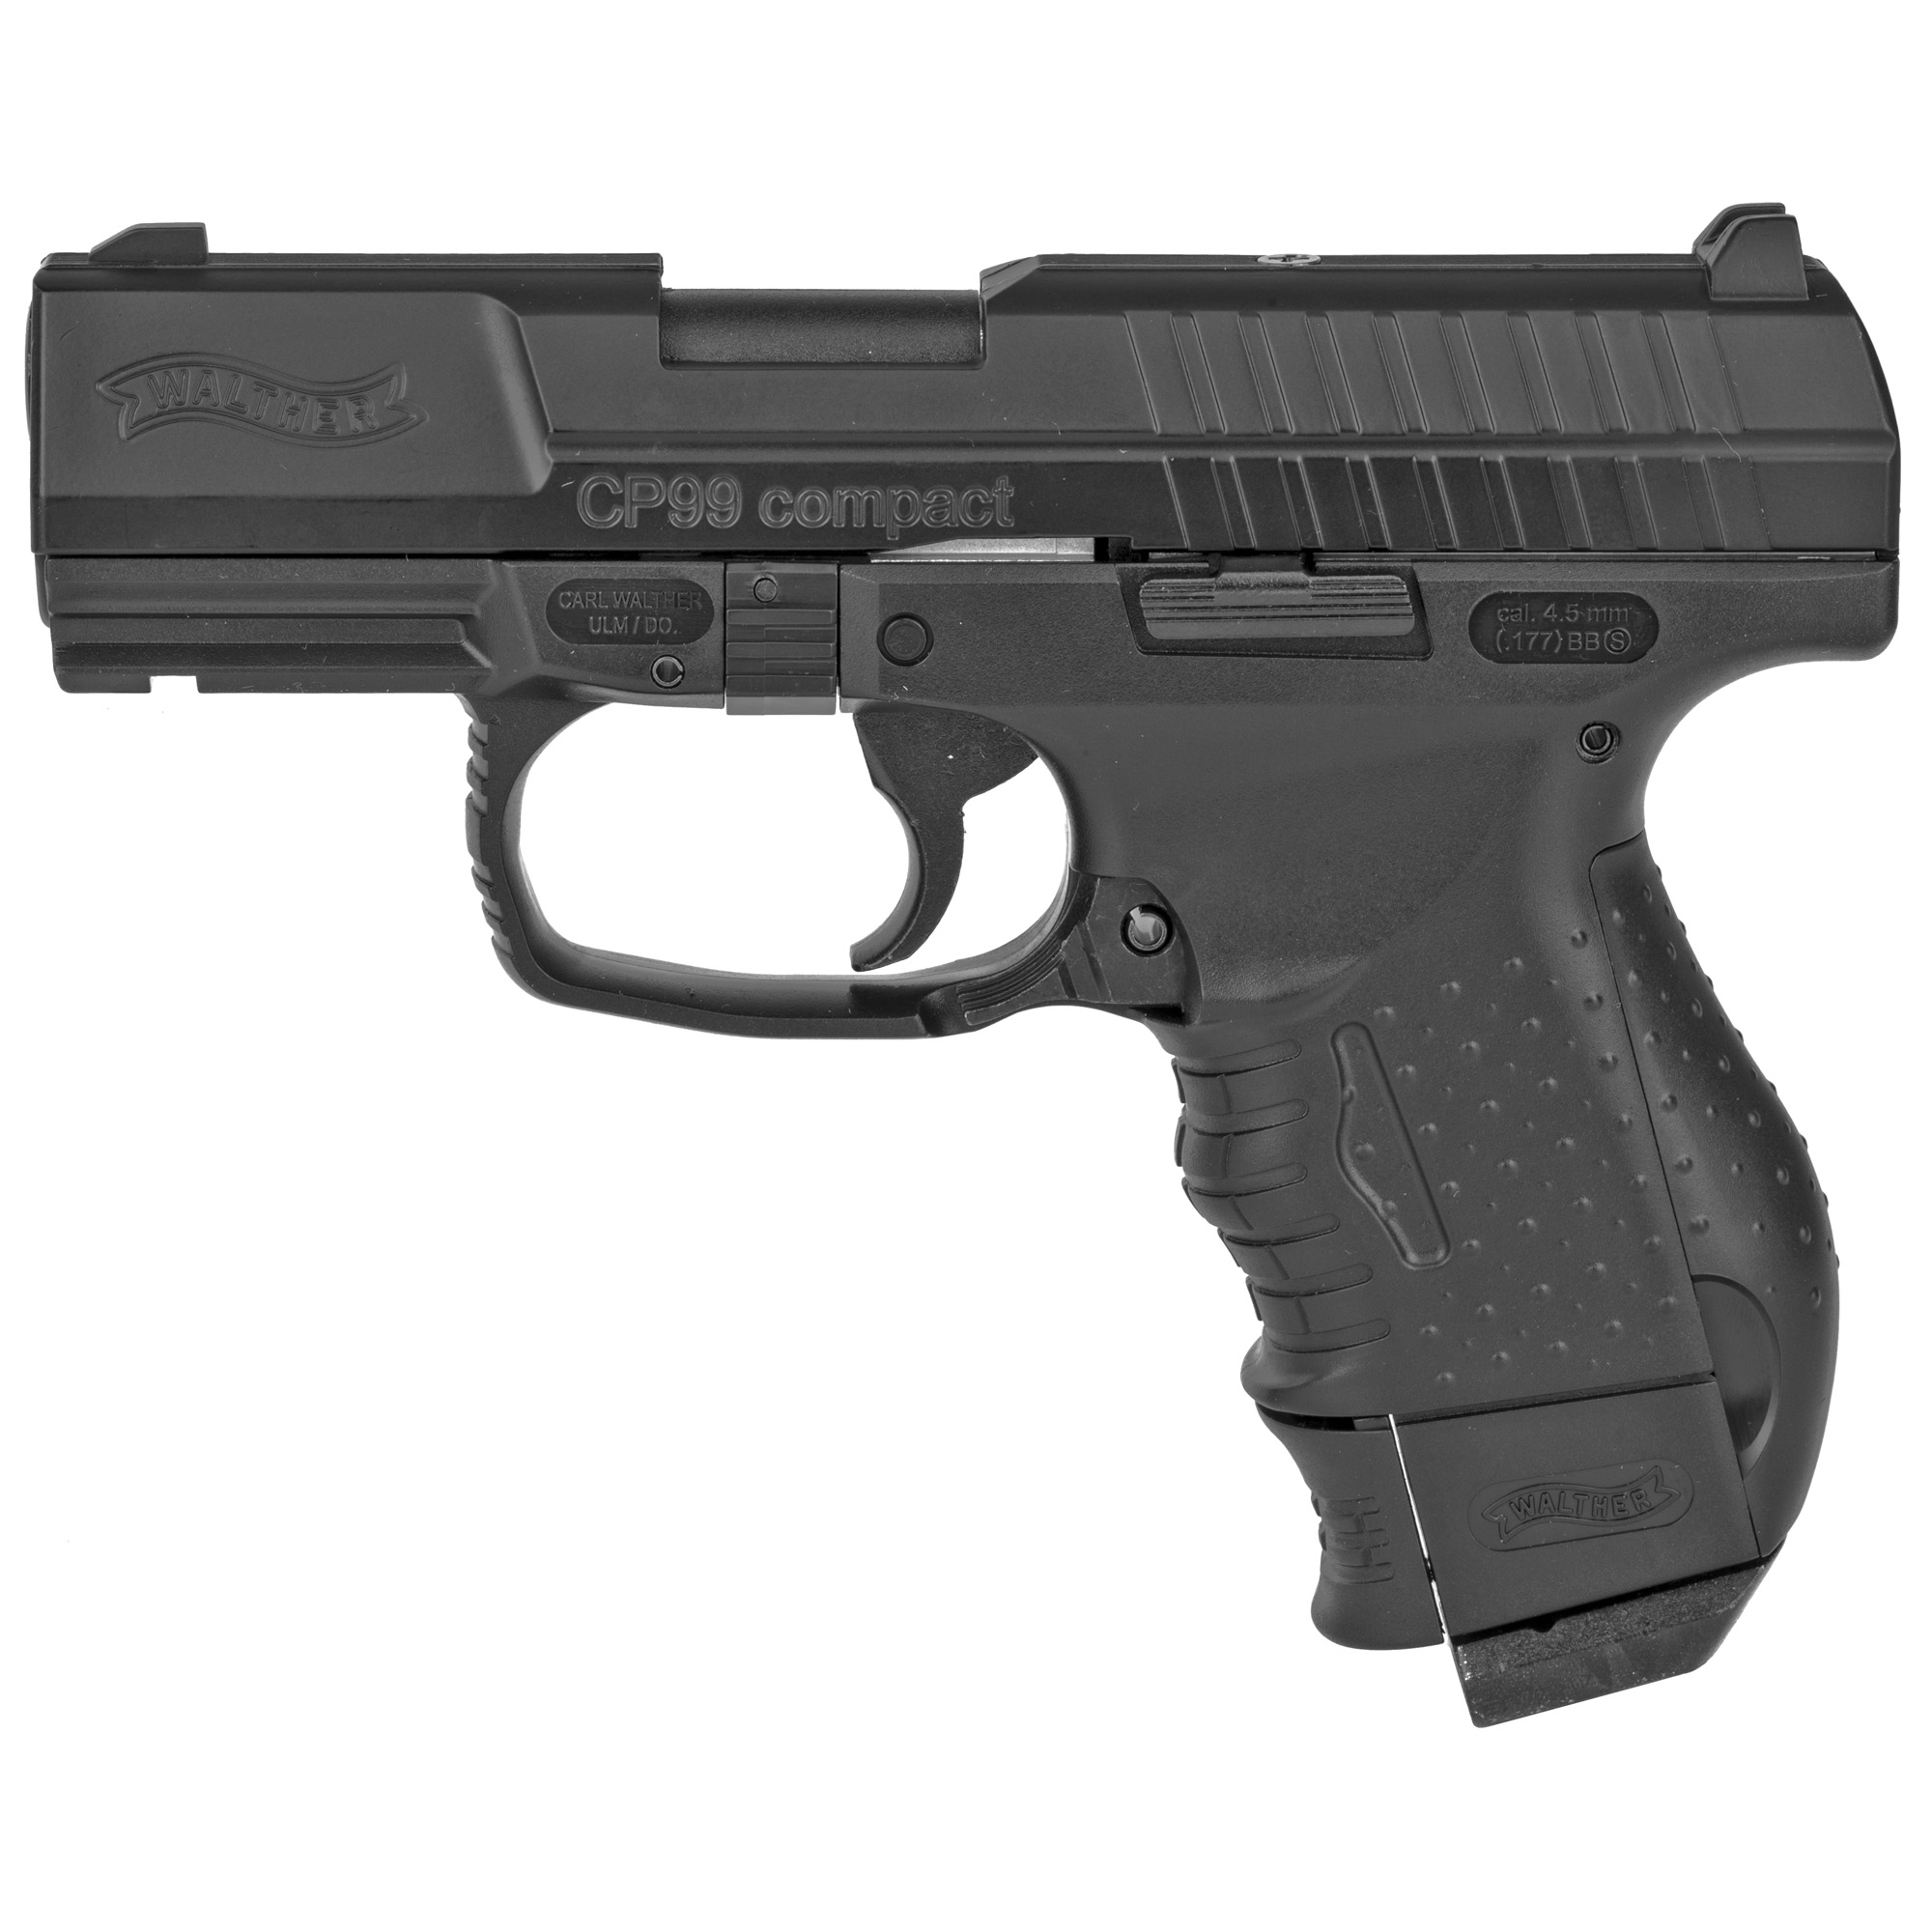 """This popular CO2 powered BB air pistol captures realism with its BLOWBACK"""" semi-automatic action and features a Picatinny mount to allow easy installation of accessories such as a Walther Laser Sight. A 12g CO2 cylinder loads in the back of the grip and the BB magazine releases with the push of a realistic magazine release lever. The recoil action made live by the power of CO2 kicks the slide back giving you a realistic feel. A great pistol for target games and owners of the P99 Compact or similar firearms."""